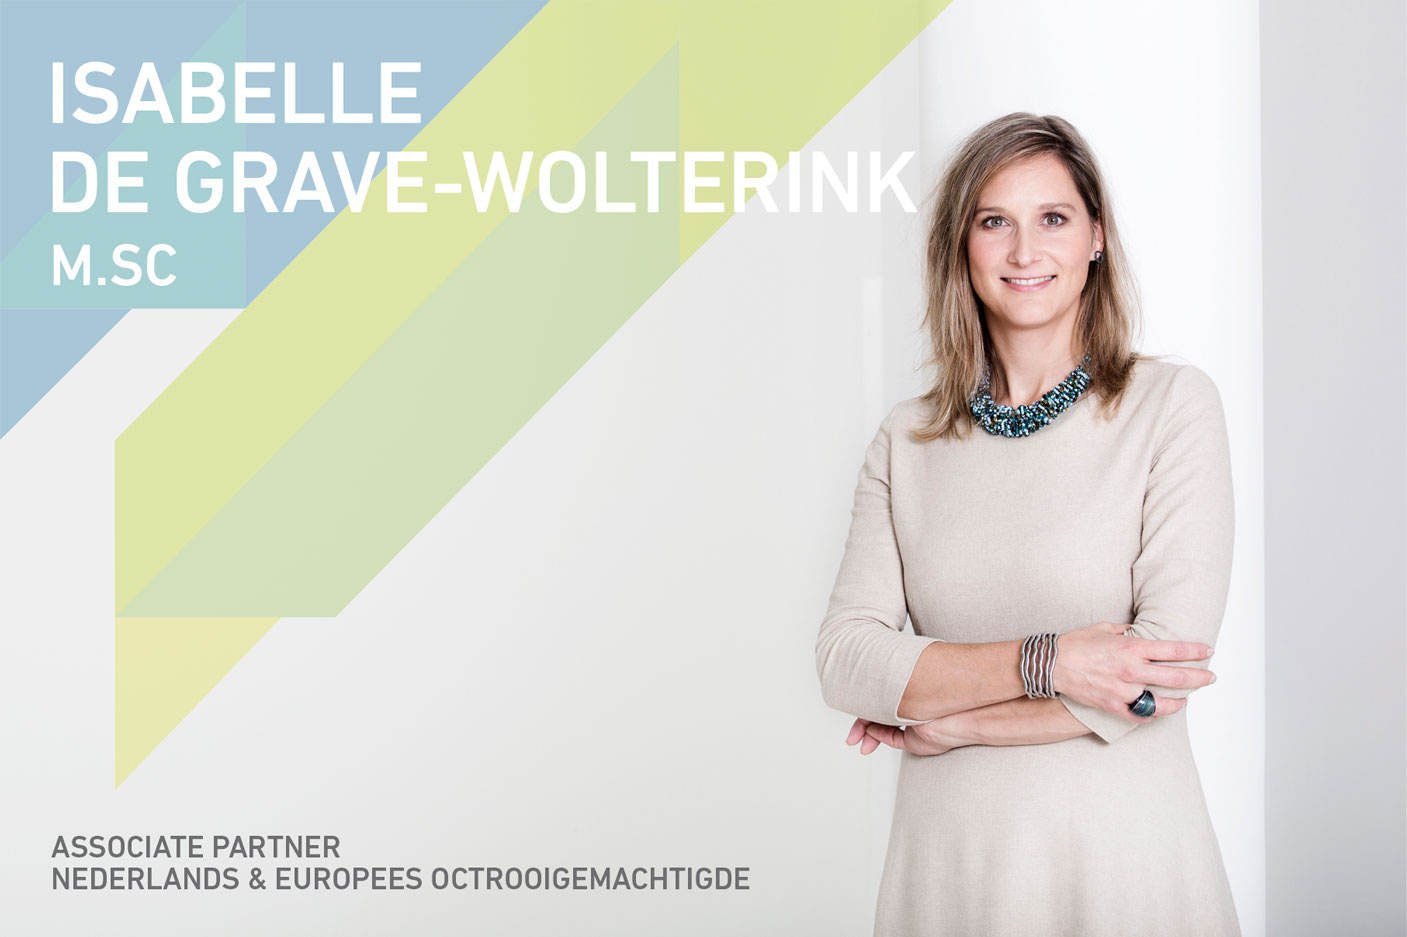 Isabelle-de-Grave-Wolterink_groot-1